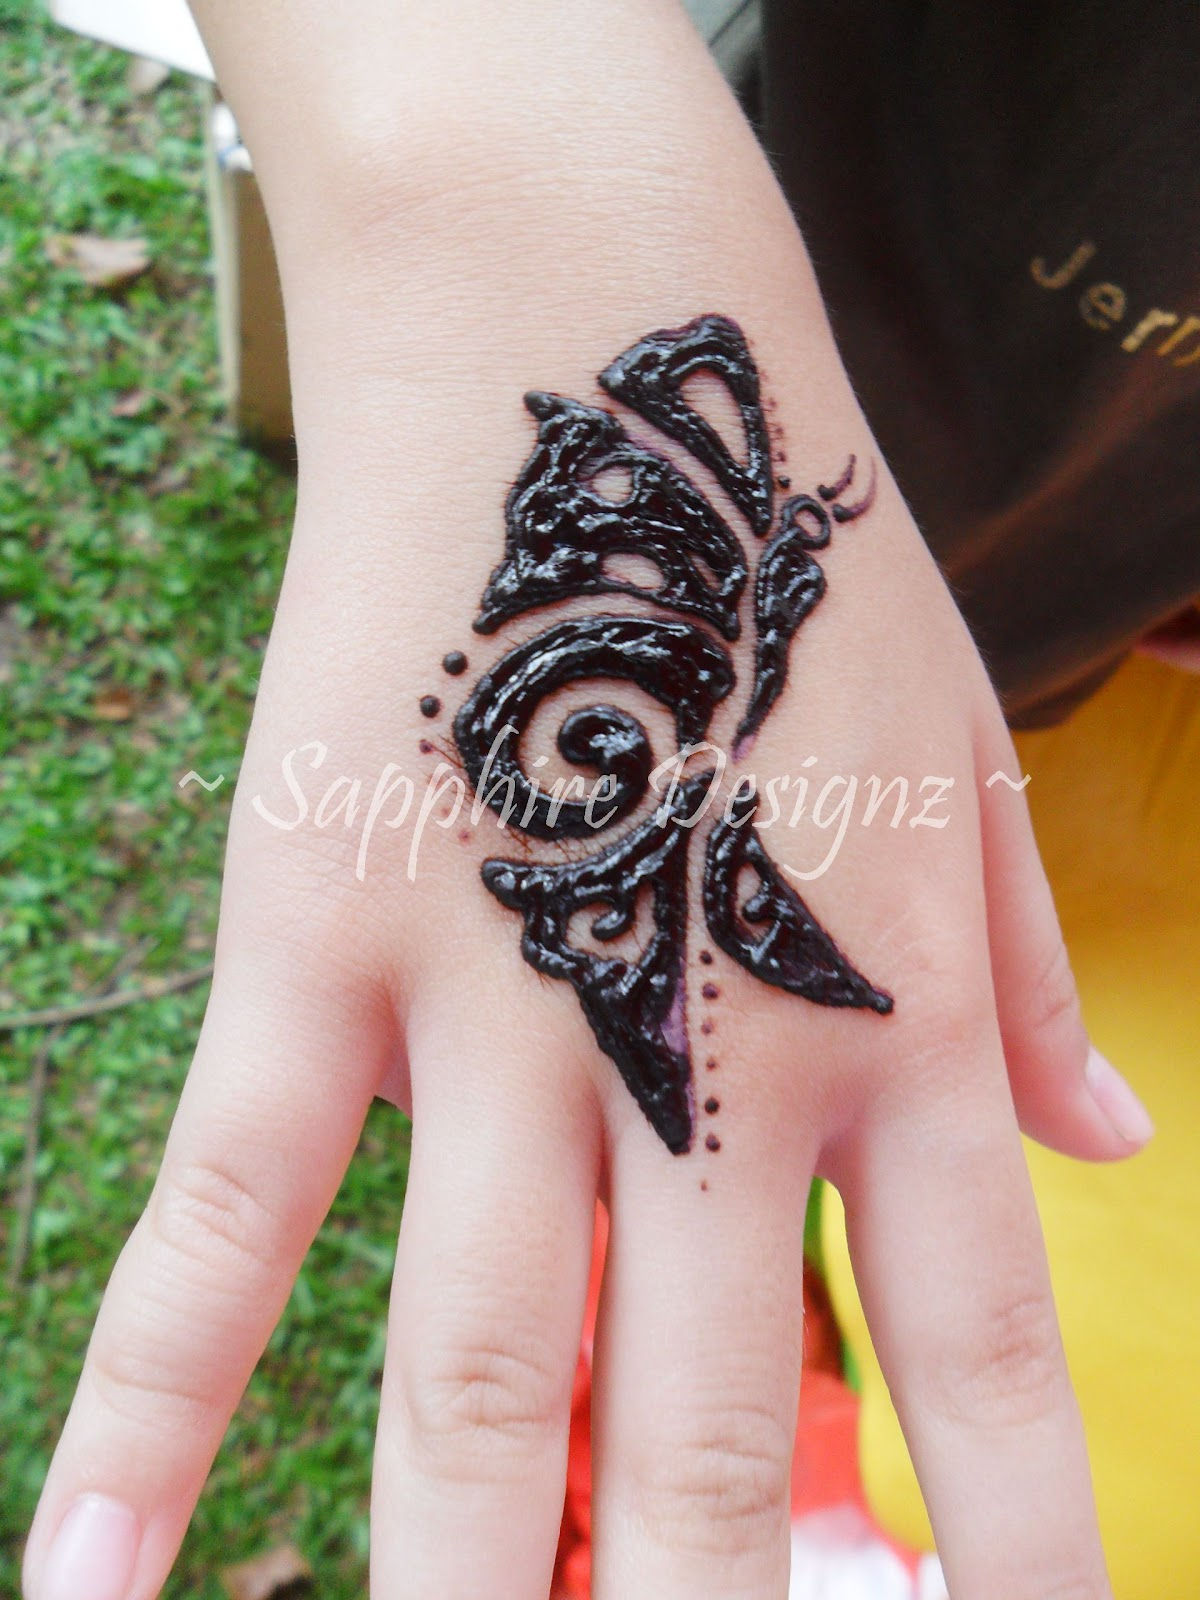 Sapphire Designz Fun Charity And Henna For Wesak